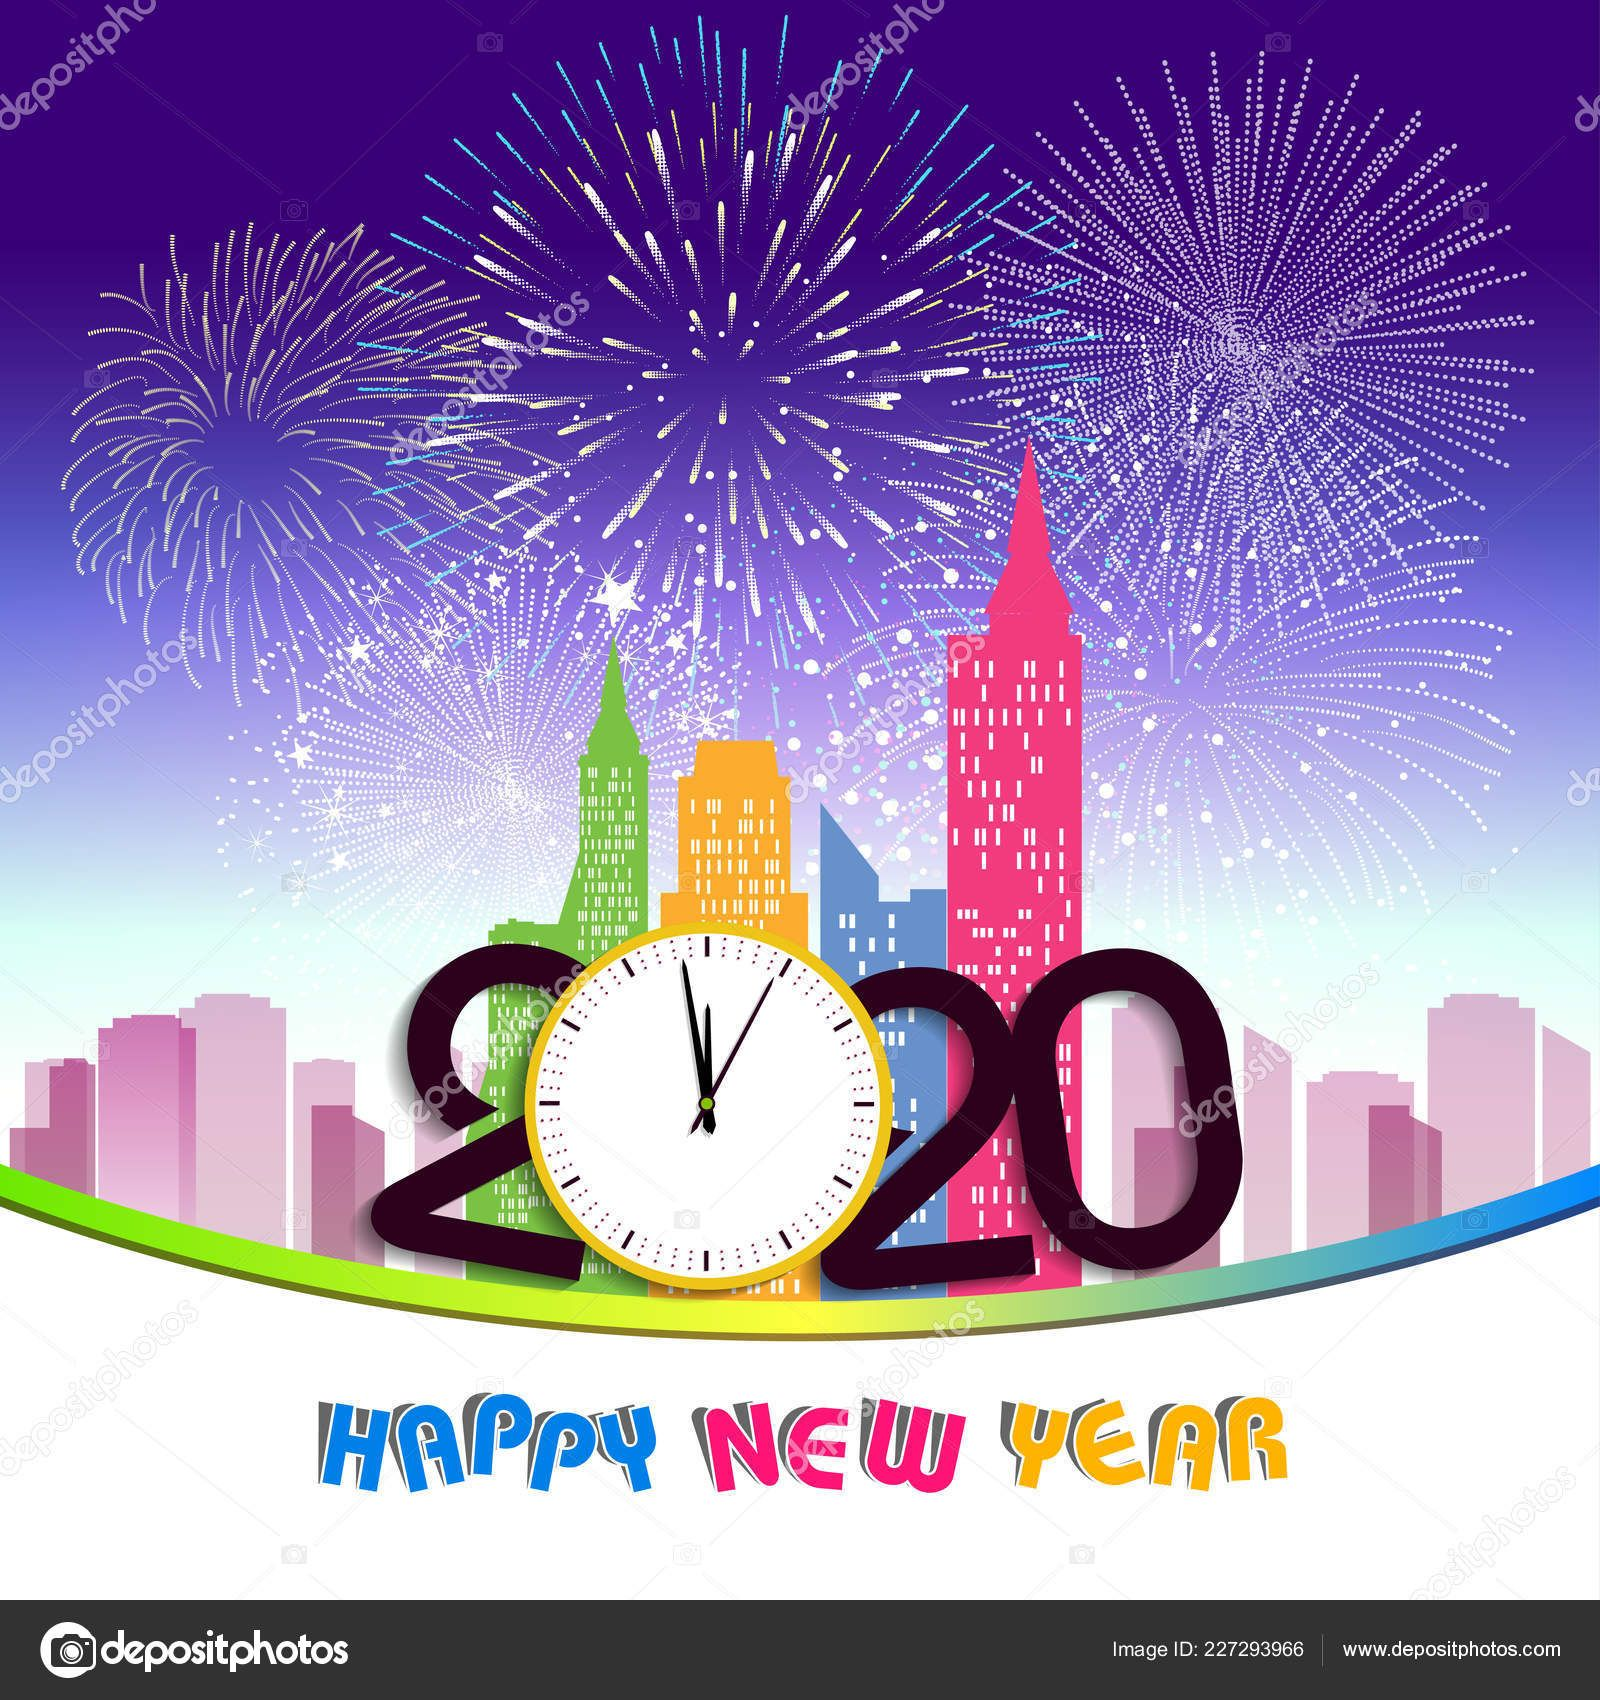 Happy New Year 2020 Wallpaper And Images Happy New Year 2020 Gifs Memes Happy New Year Quotes Happy New Year 2020 Happy New Year Wishes